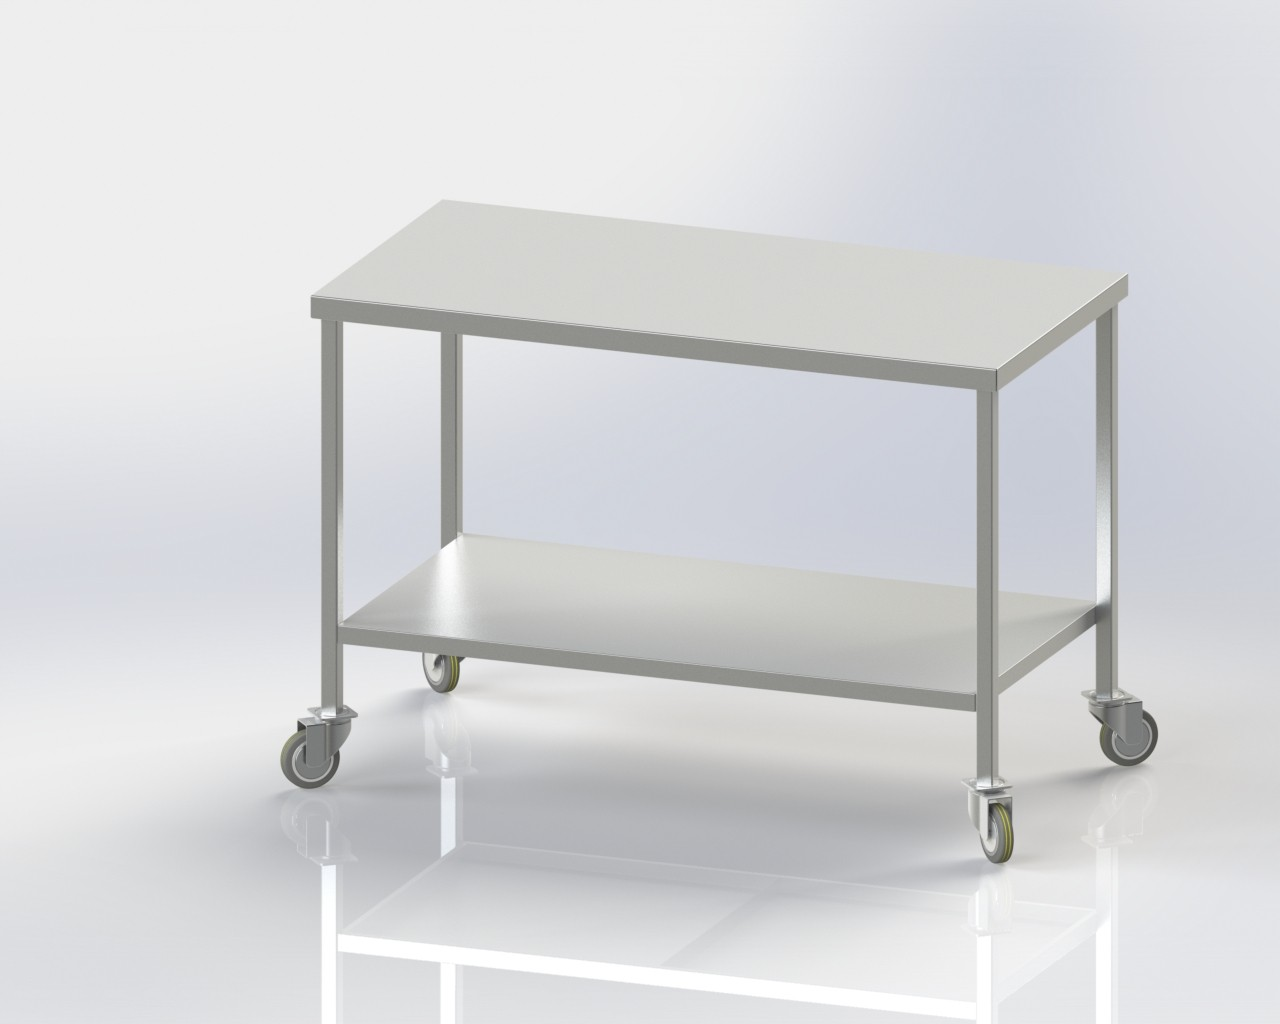 Mobile Table/Lower shelf